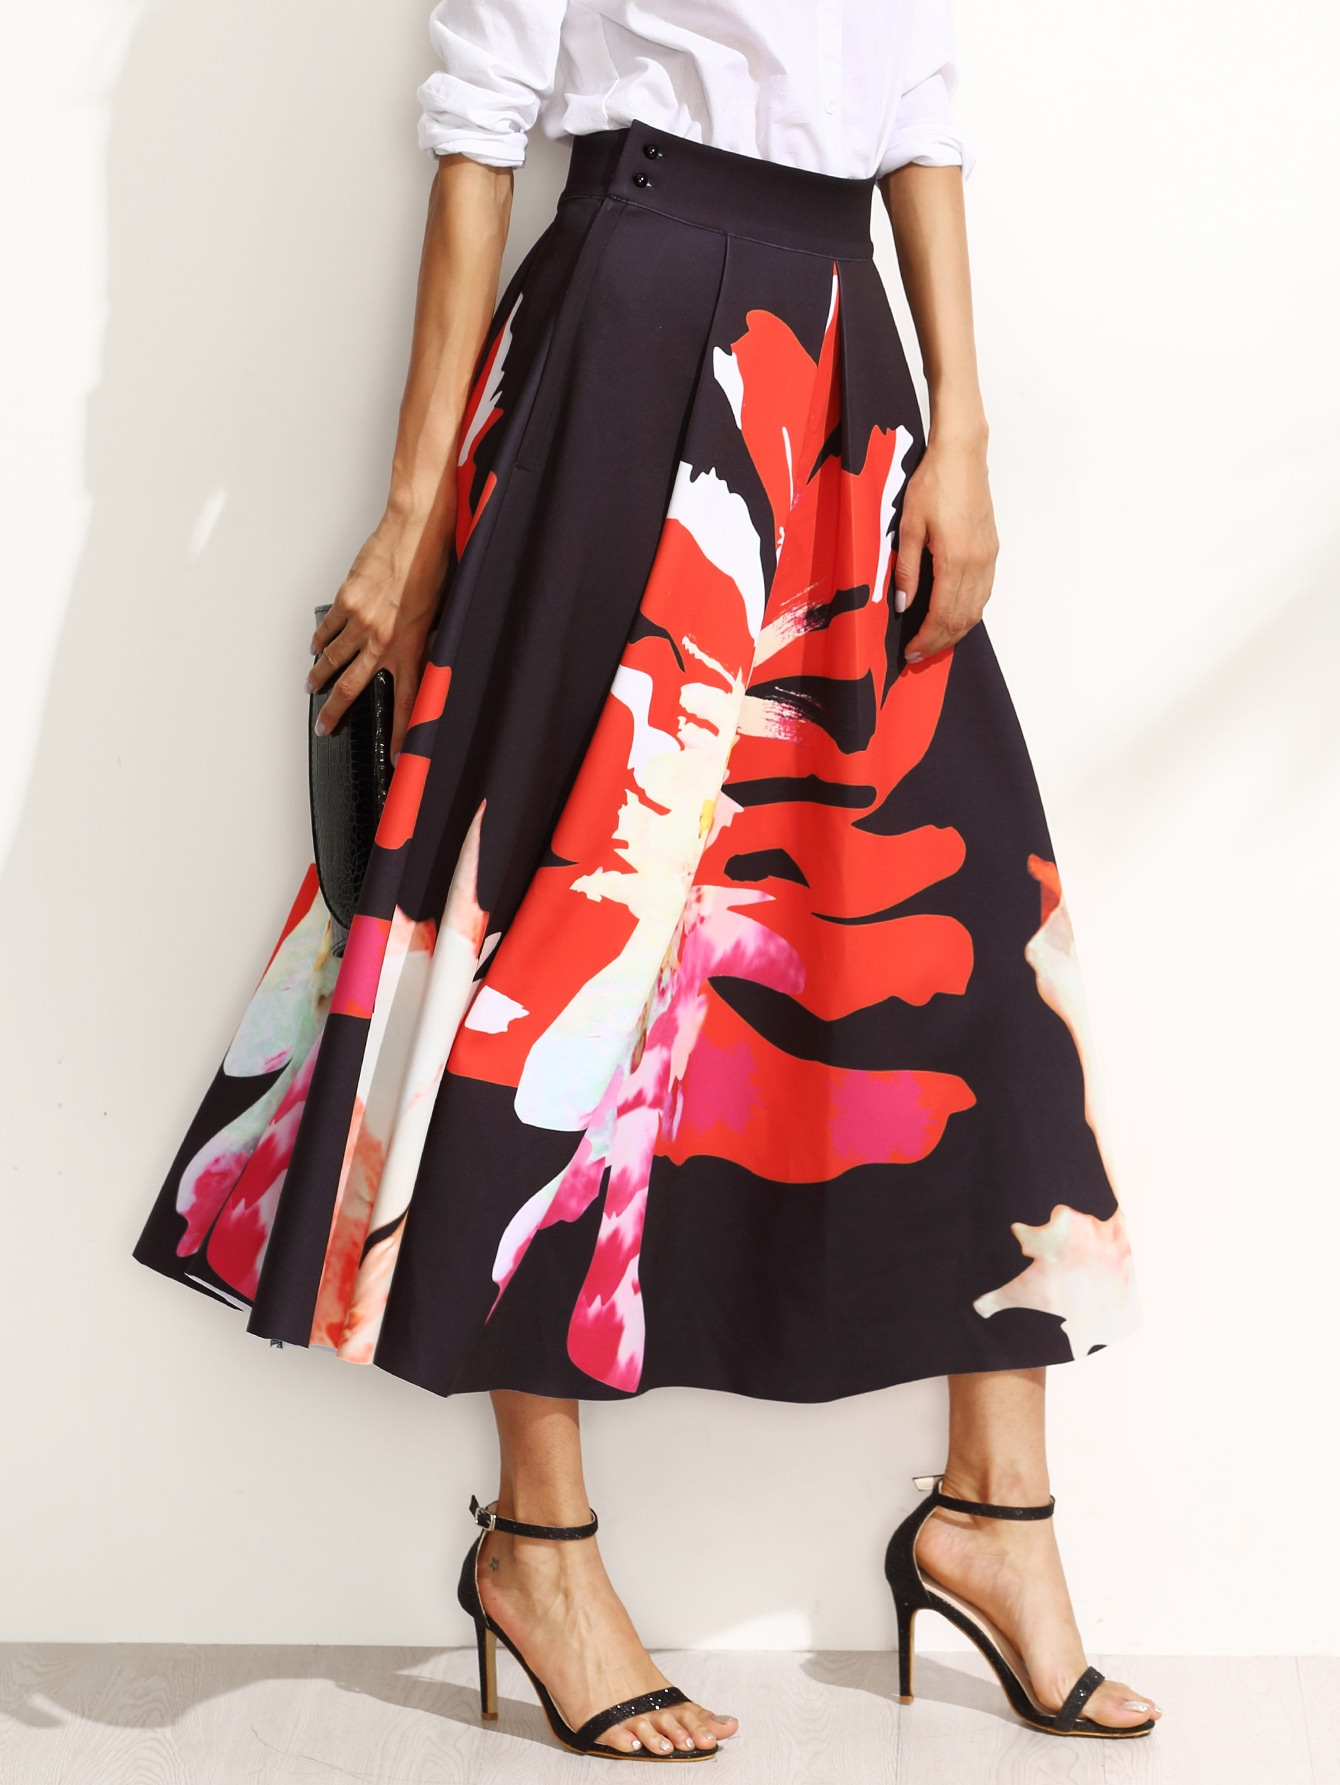 Floral Print Pleated Skirt With Button Side подвесная люстра bohemia ivele crystal 1413 8 4 165 2d g